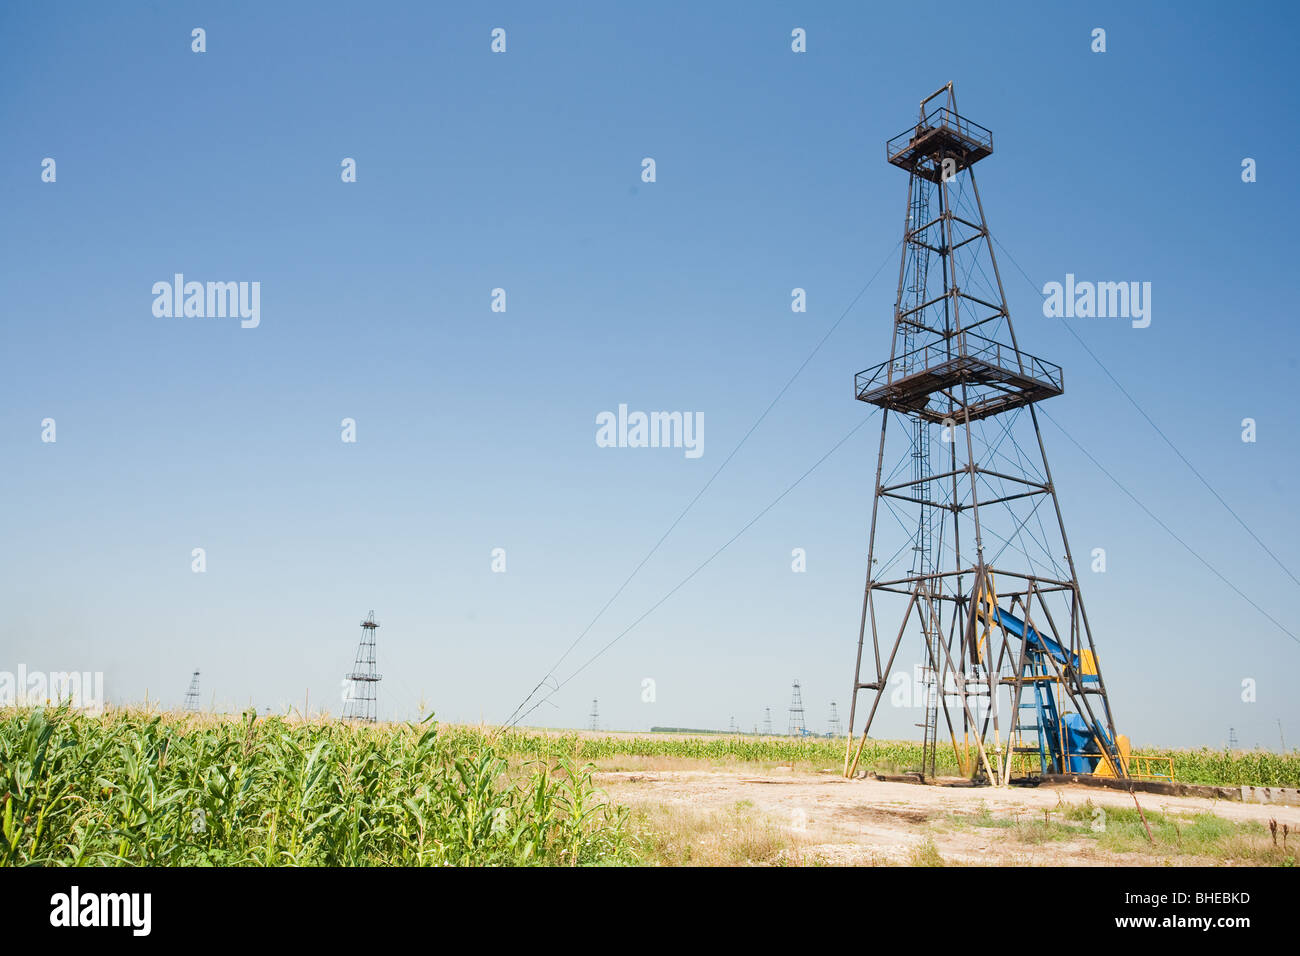 Oil well field in a middle of a corn field. Agriculture and industry. - Stock Image